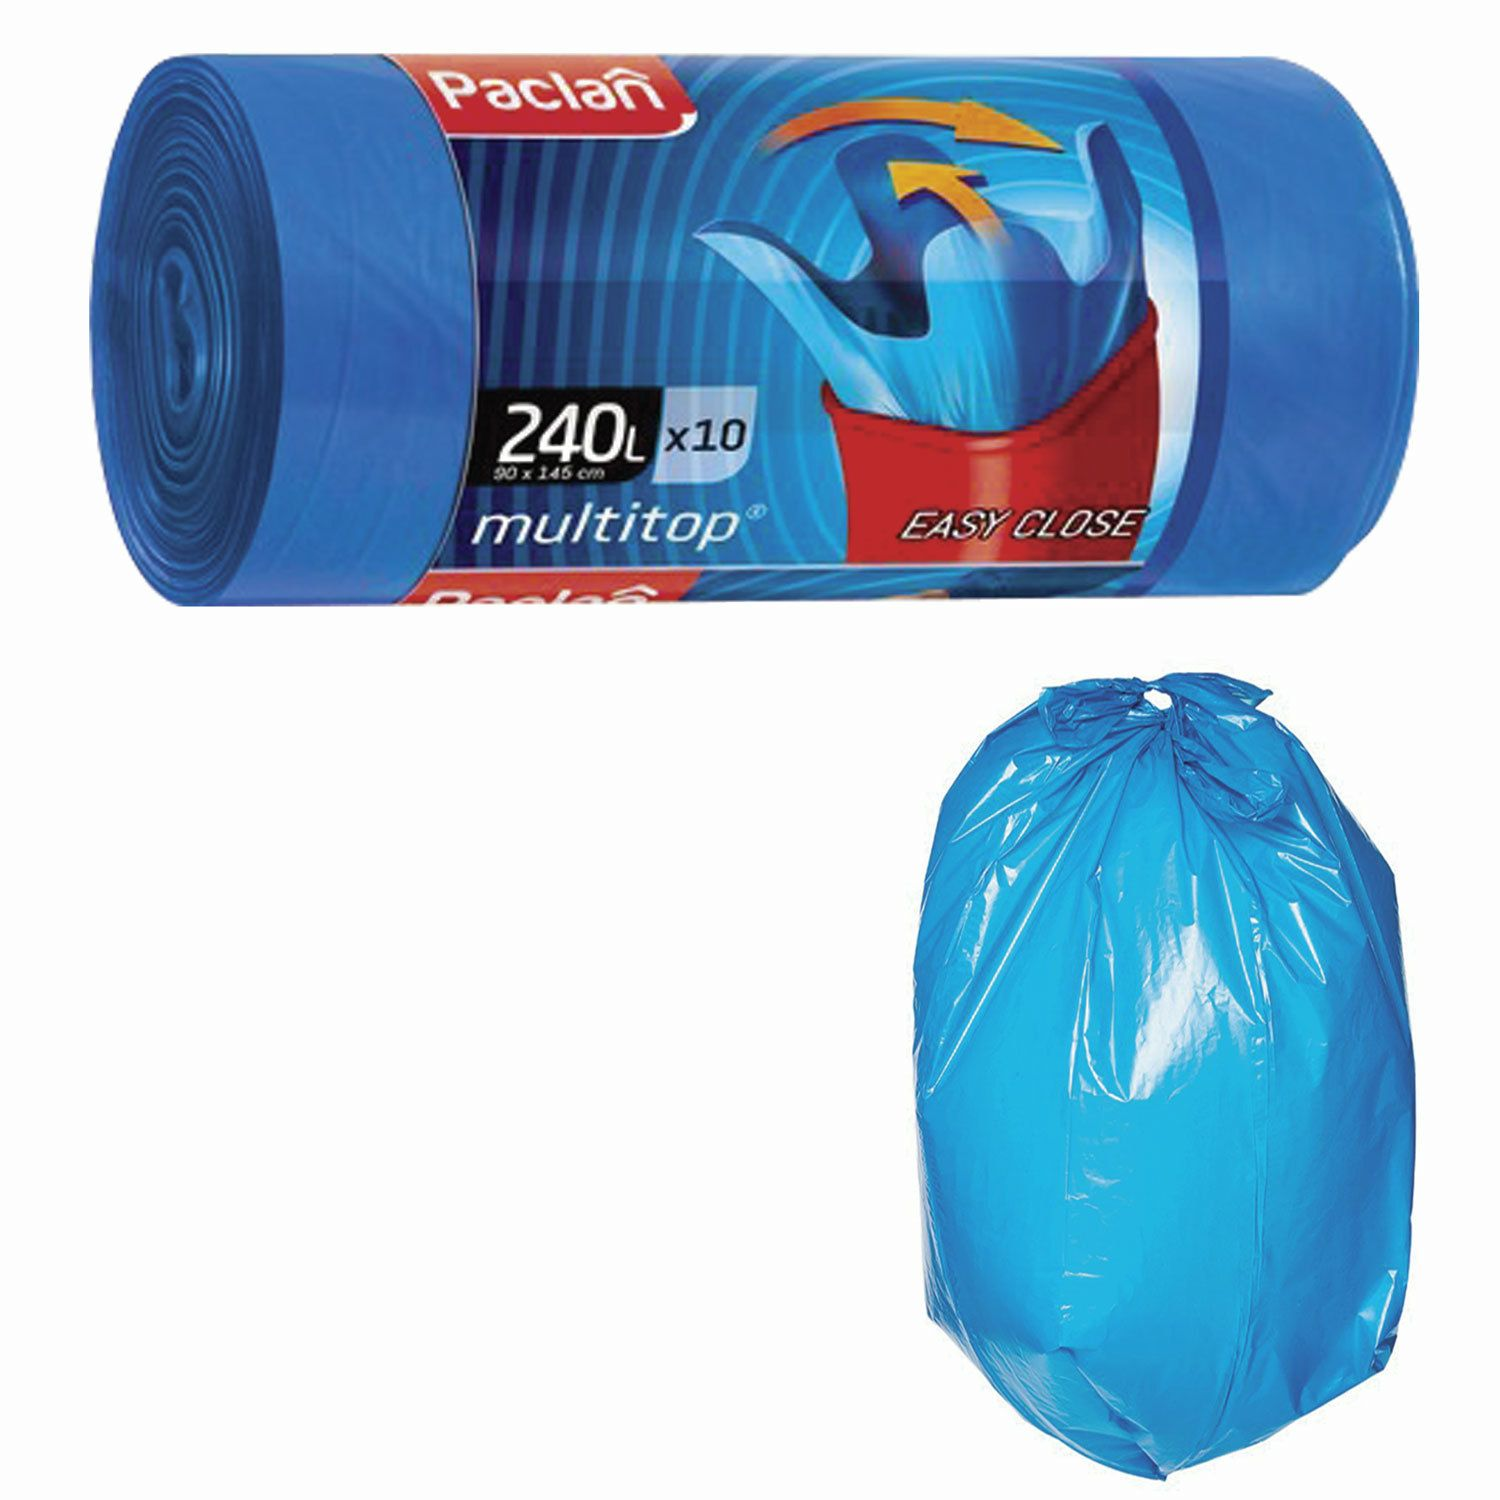 "PACLAN / Garbage bags ""Multitop"" blue with ears, 240 l, LDPE 40 microns, 90x145 cm, roll of 10 pcs."